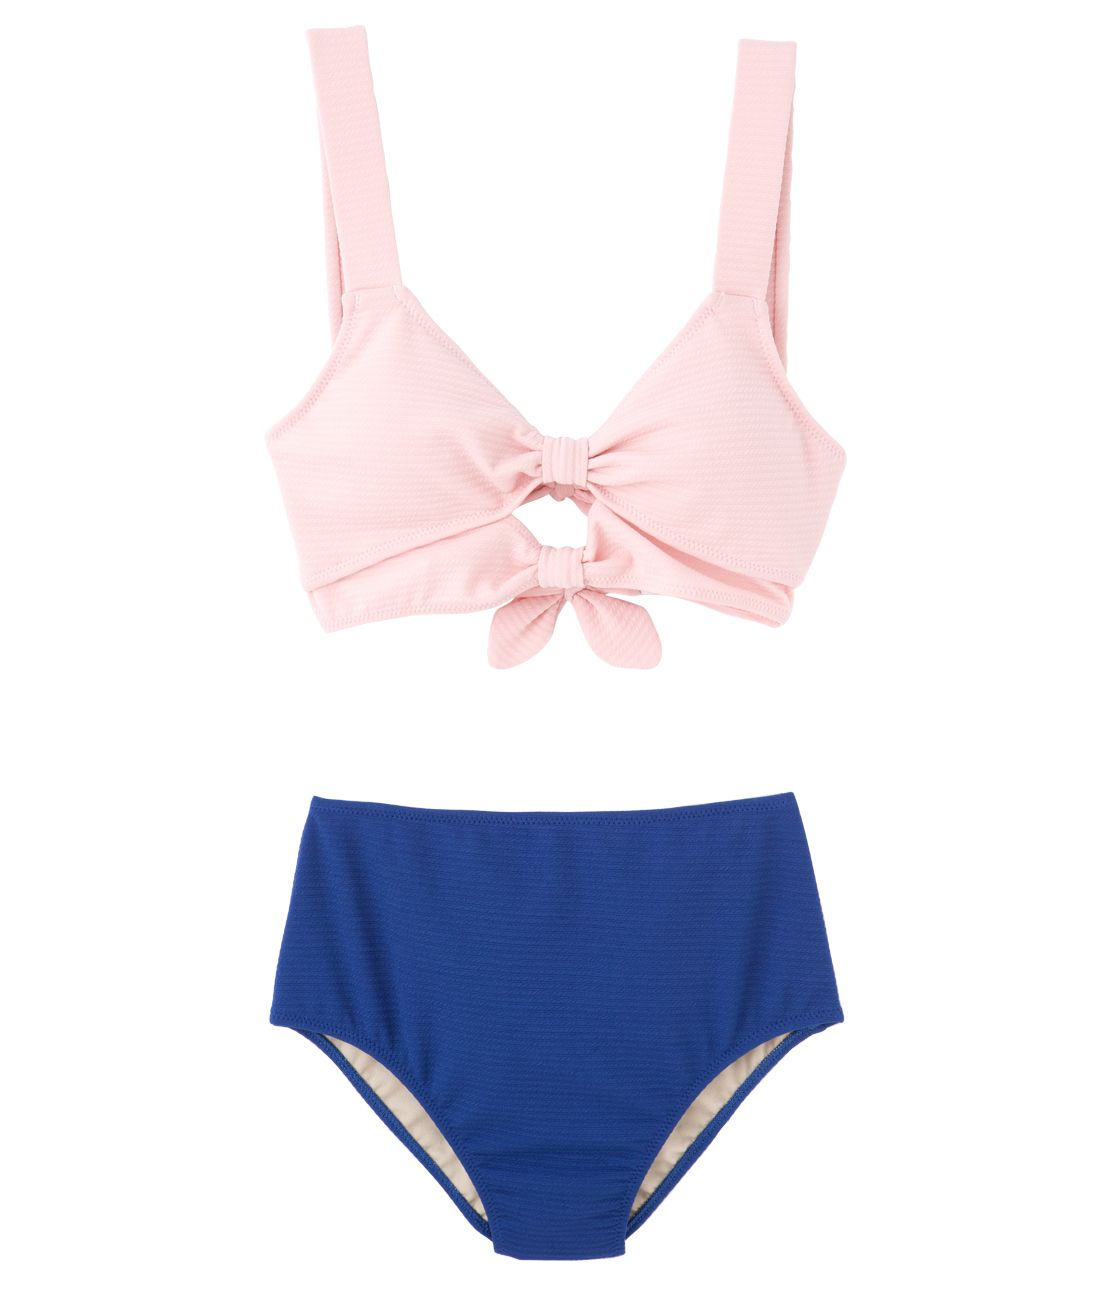 YM ribbon high-waisted bikini